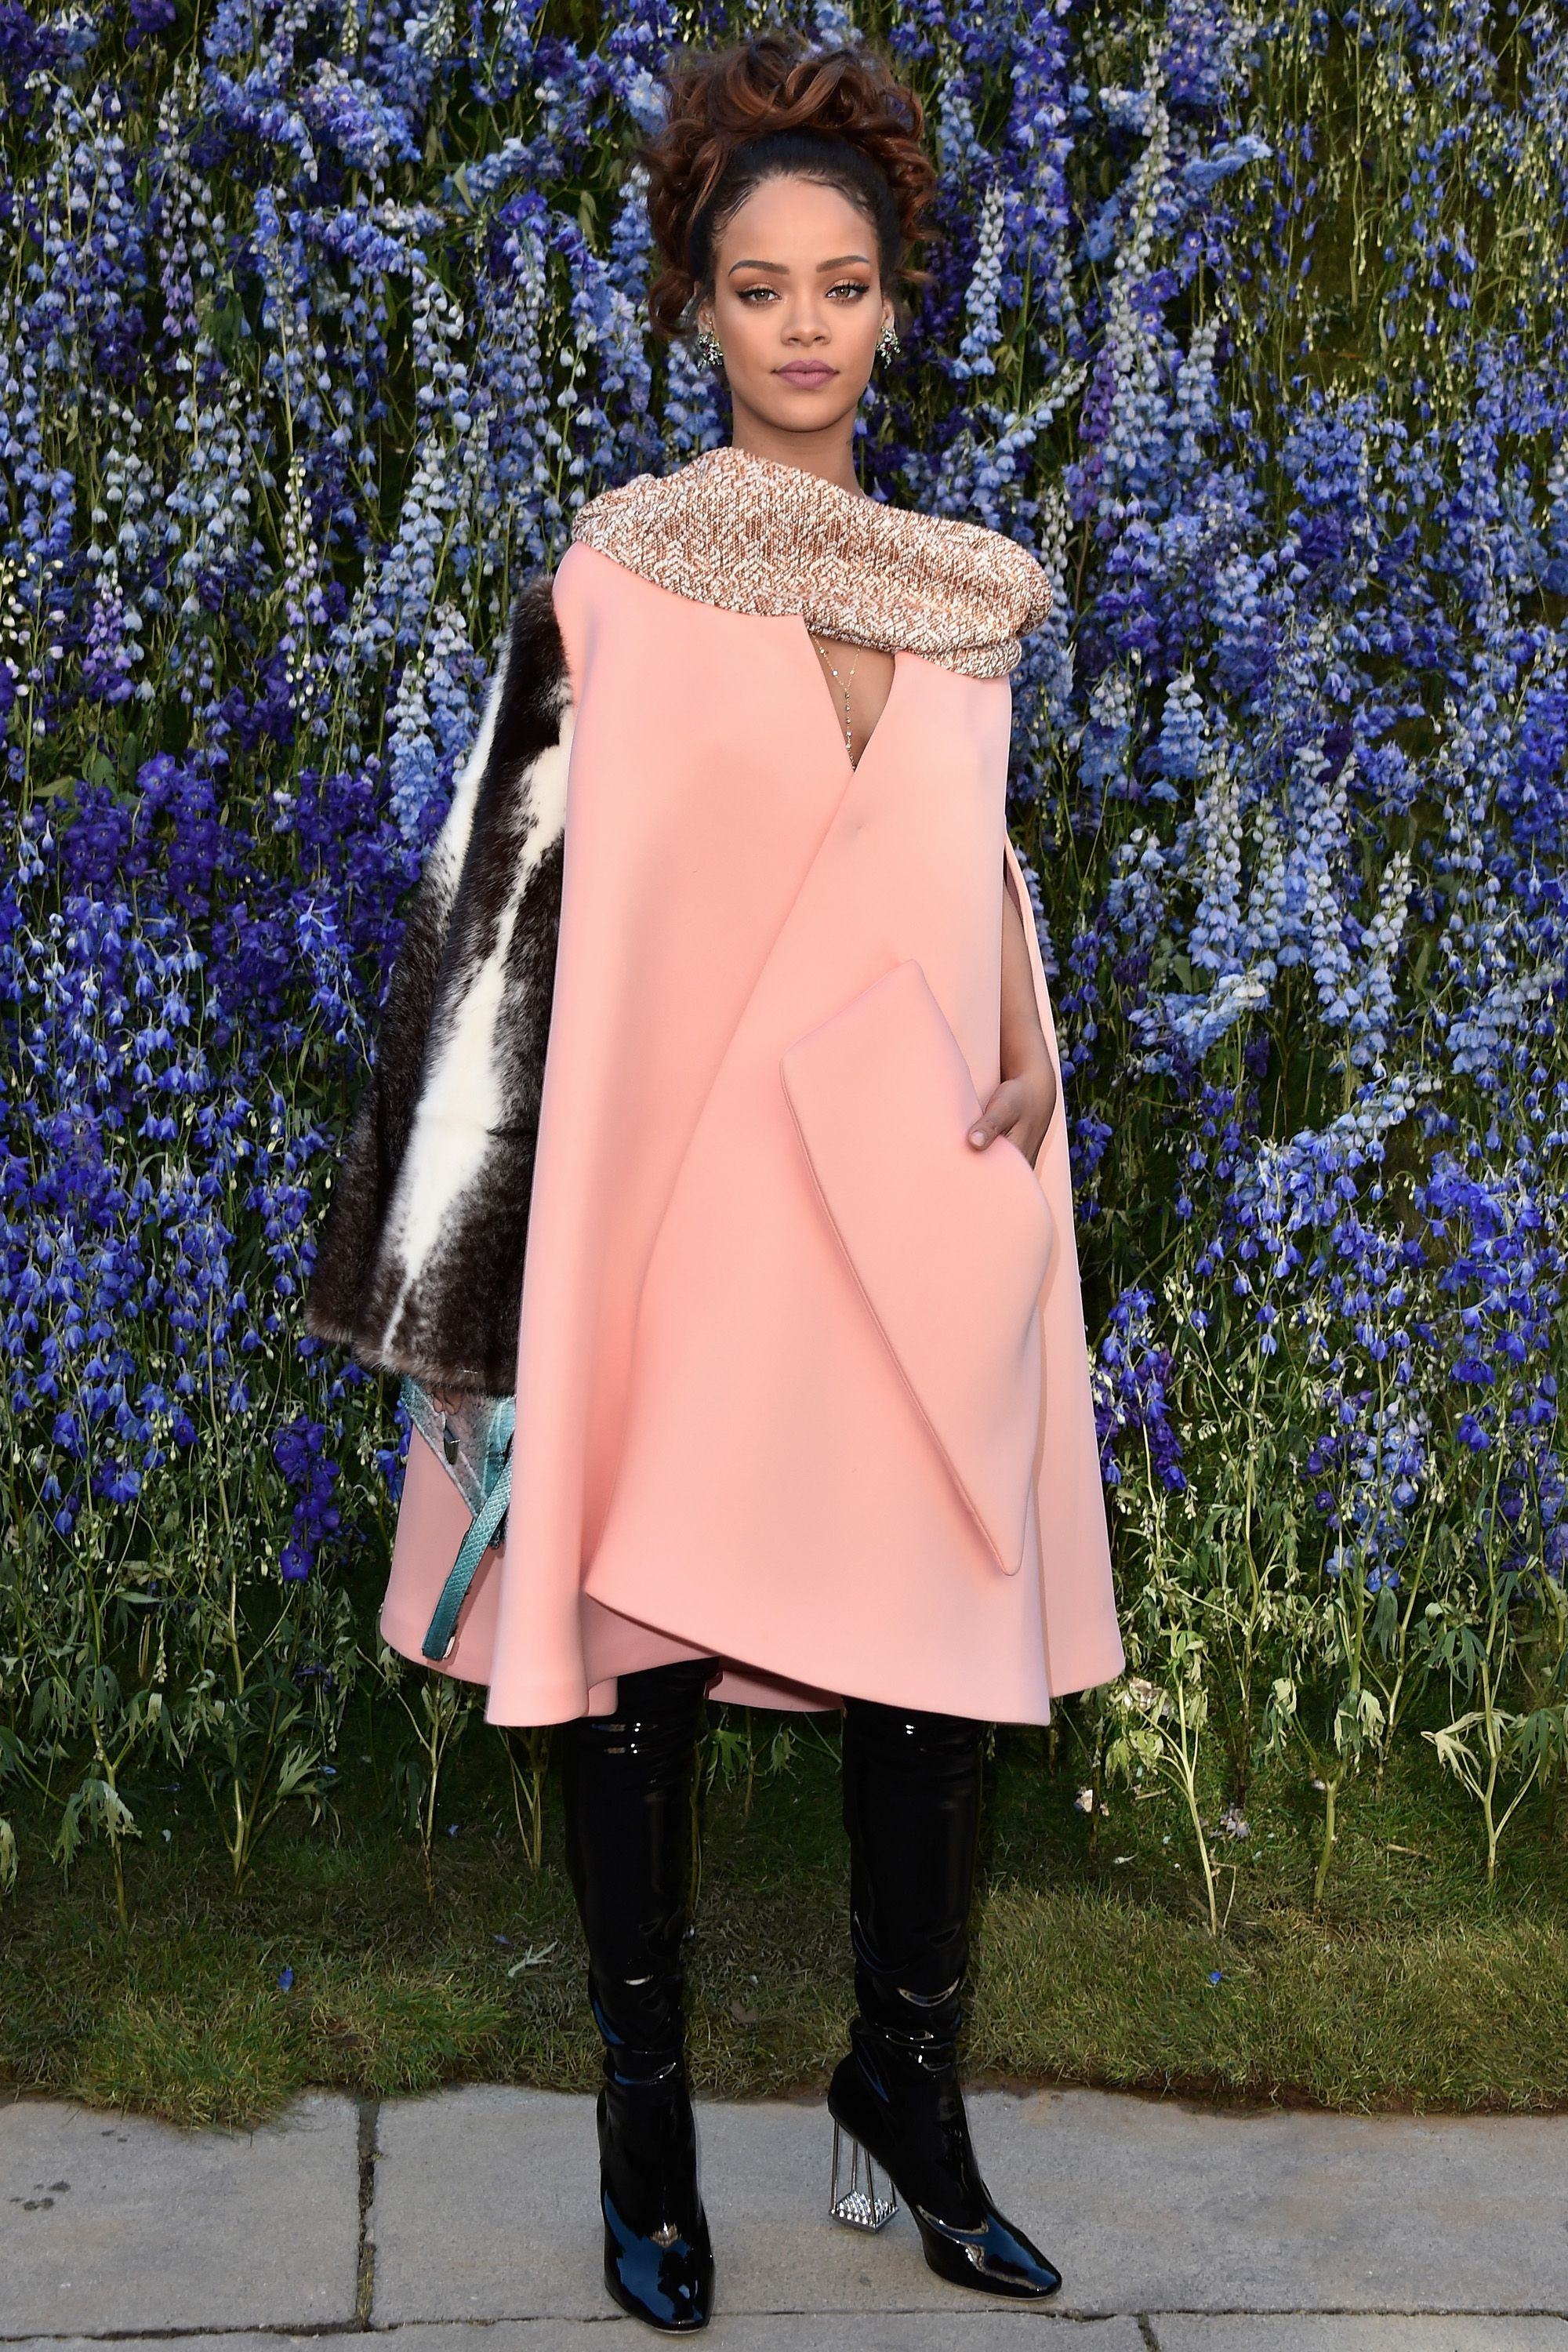 "<p>Who: Rihanna</p><p>When: October 02, 2015</p><p>Why: Spotted at the <a href=""http://www.elle.com/culture/celebrities/news/a30934/rihanna-style-fur-sleeve-coat-dior/"">Dior fashion show</a>, Rihanna rocked a coat as a dress and paired it with those thigh-high patent leather boots we've coveted all season. We can't think of anyone else who could possibly pull off a single fur sleeve like RiRi. </p>"